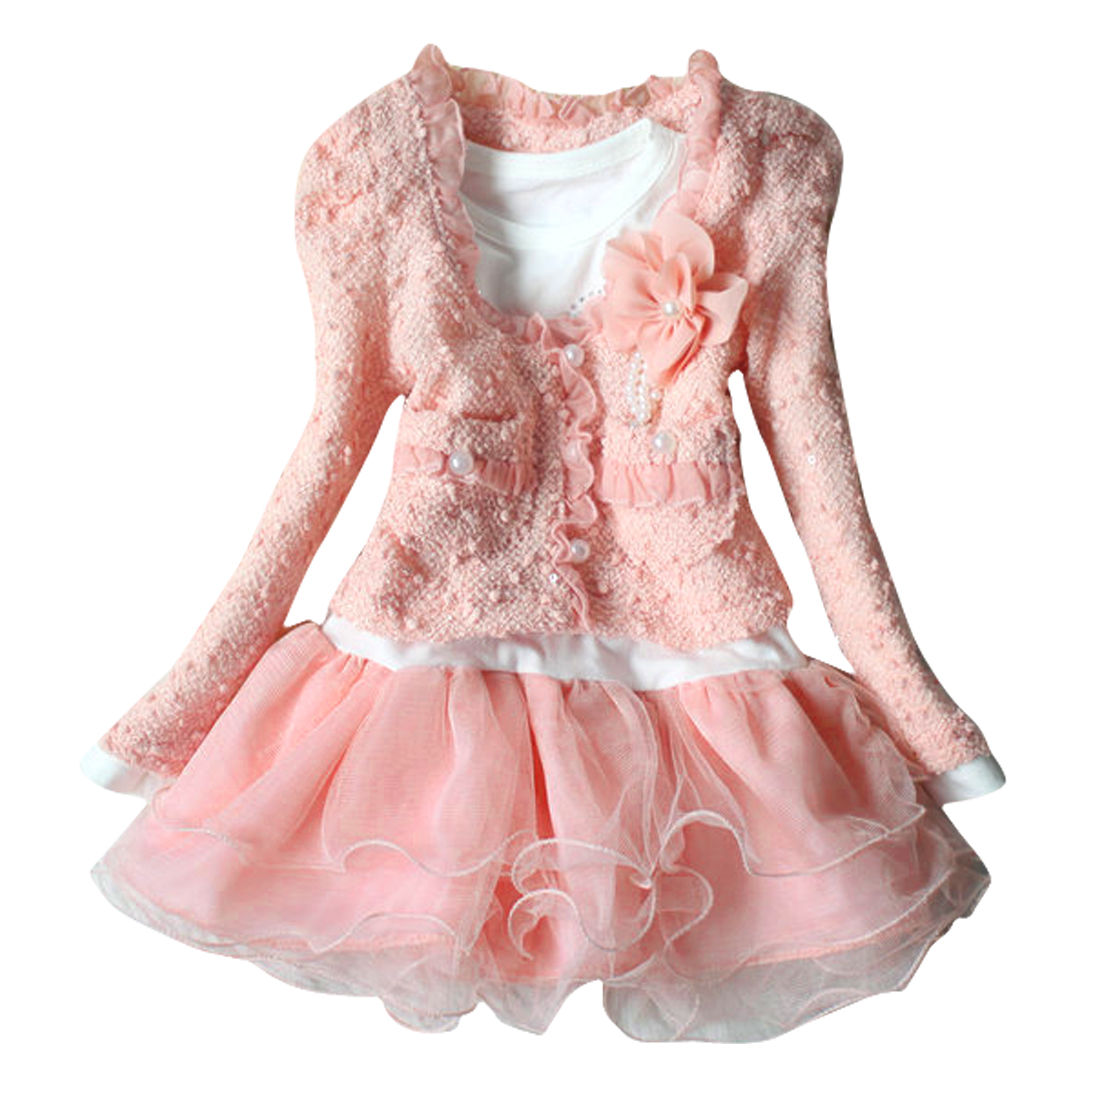 Girls Front Closure Cardigan w Round Neck Long Sleeve Dress Pink 3T